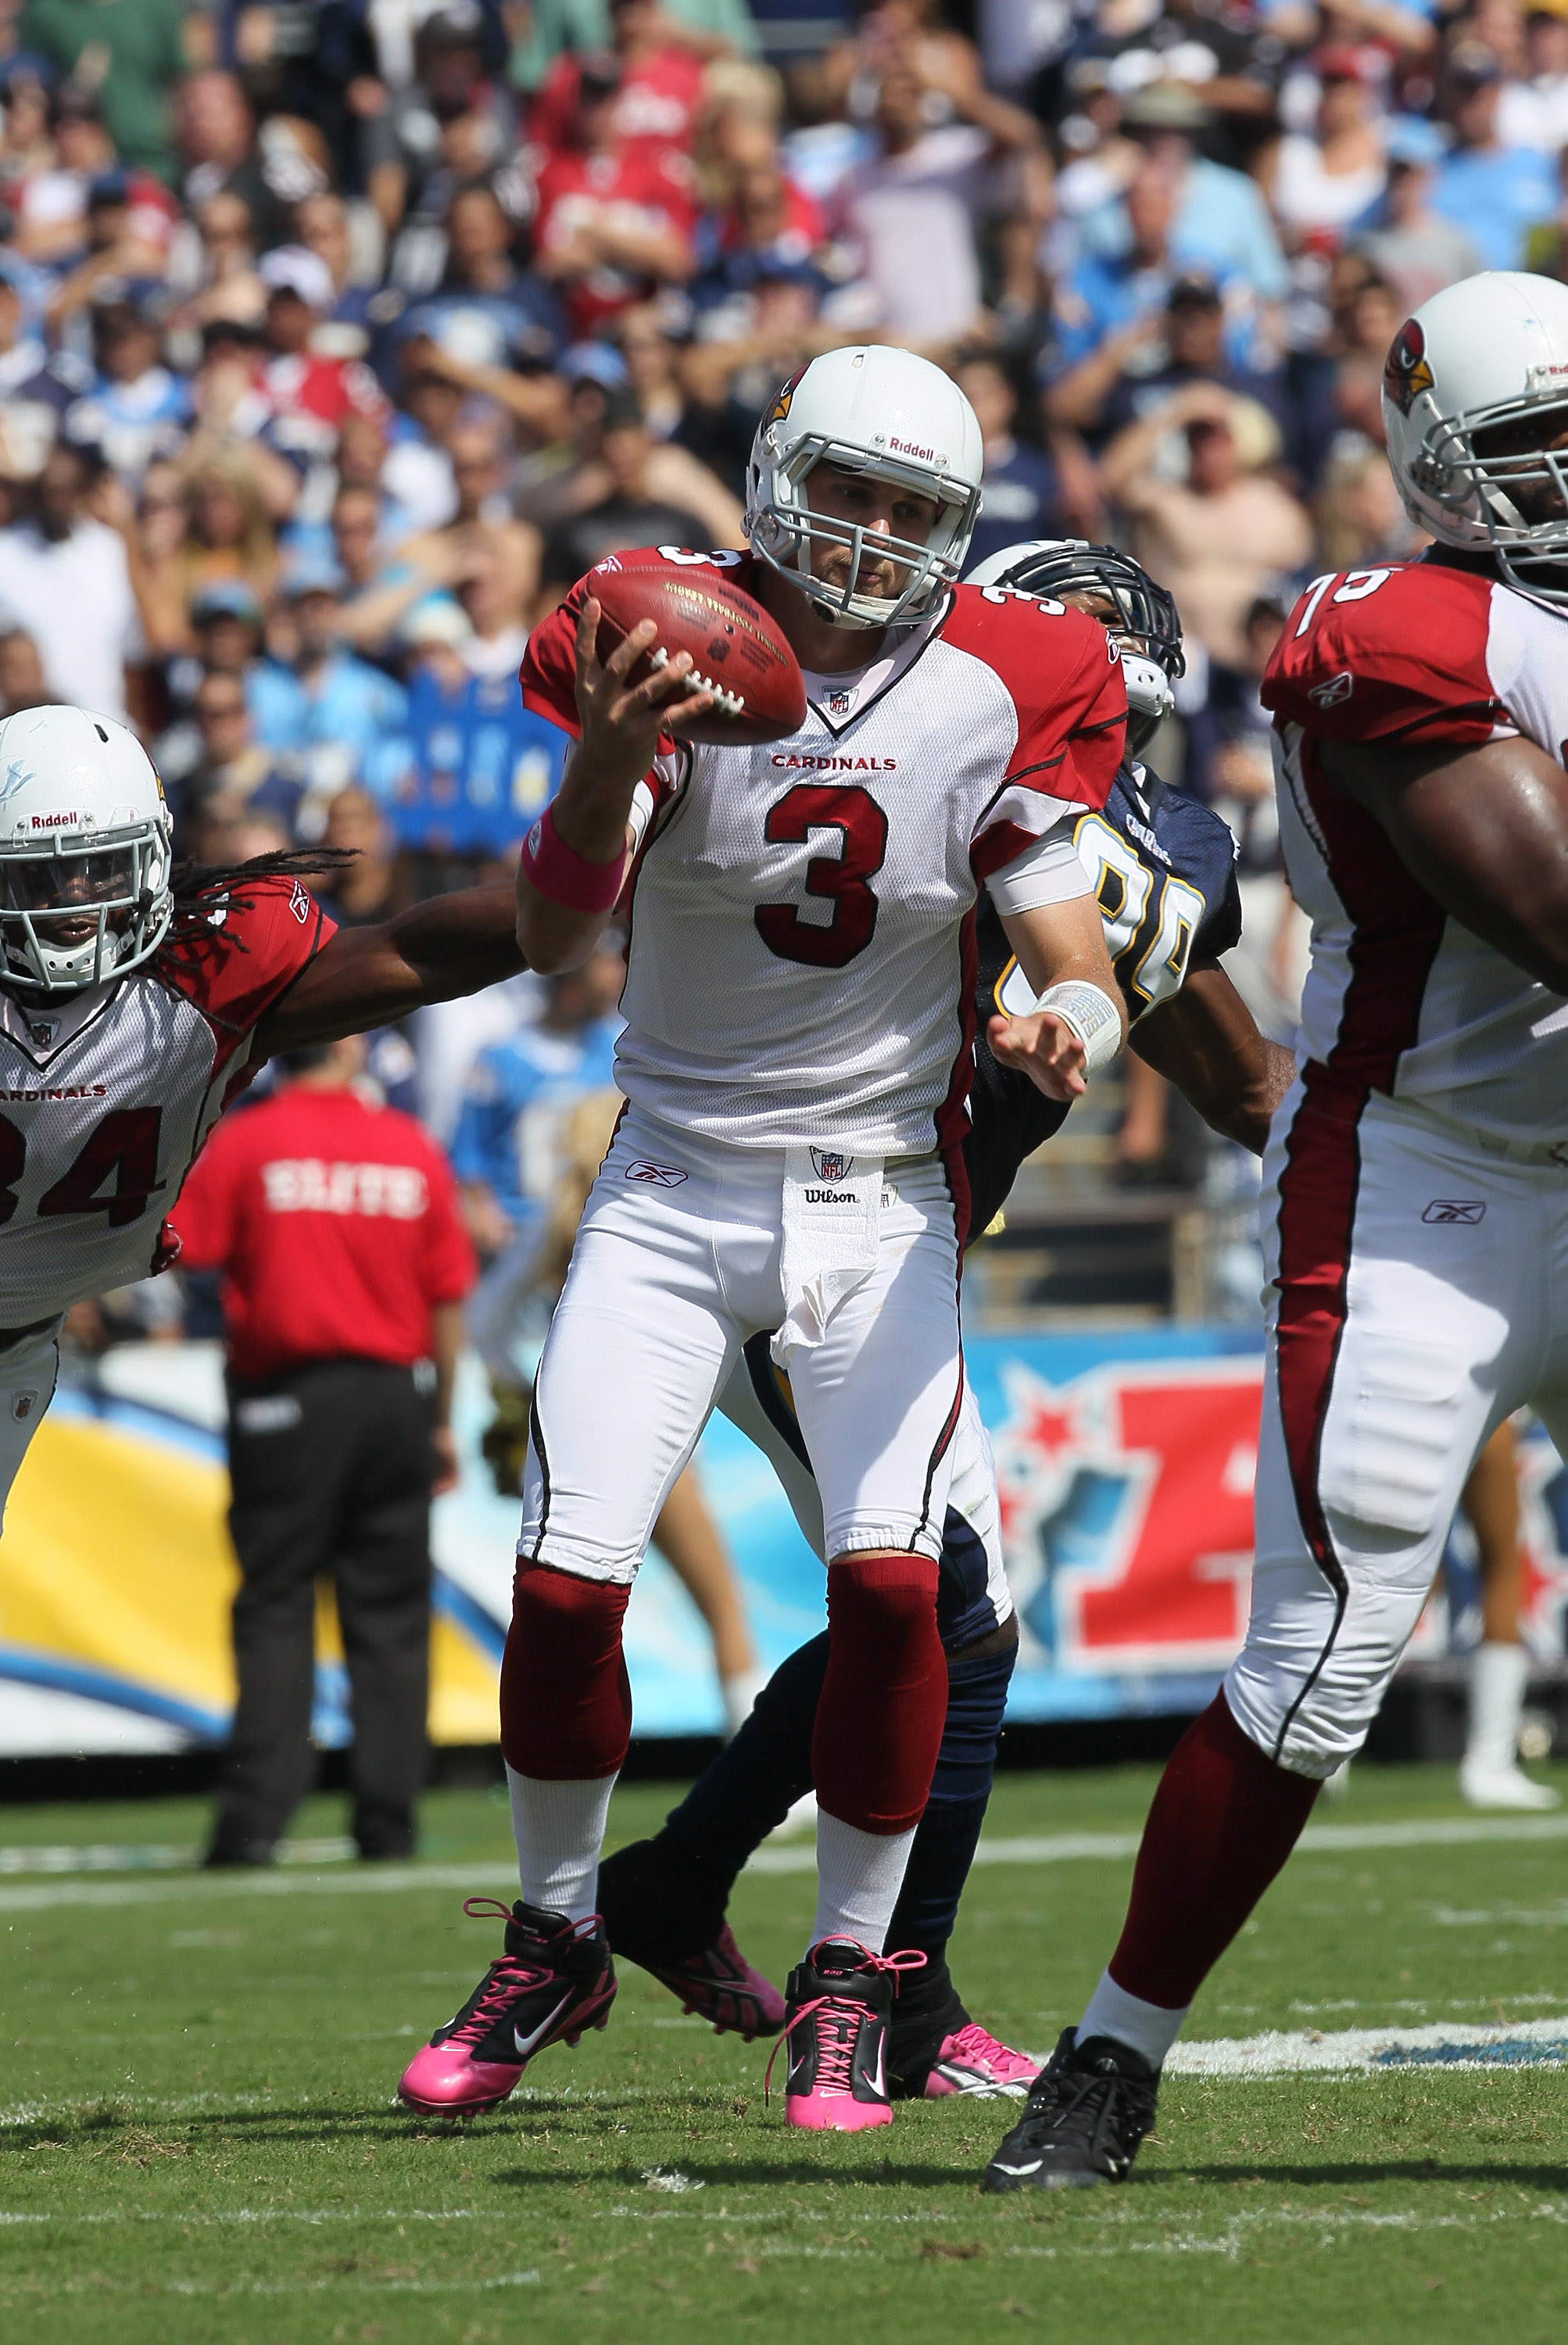 SAN DIEGO - OCTOBER 03:  Quarterback Derek Anderson #3 of the Arizona Cardinals holds up as he attempts a pass against the San Diego Chargers at Qualcomm Stadium on October 3, 2010 in San Diego, California.  The Chargers won 41-10.  (Photo by Stephen Dunn